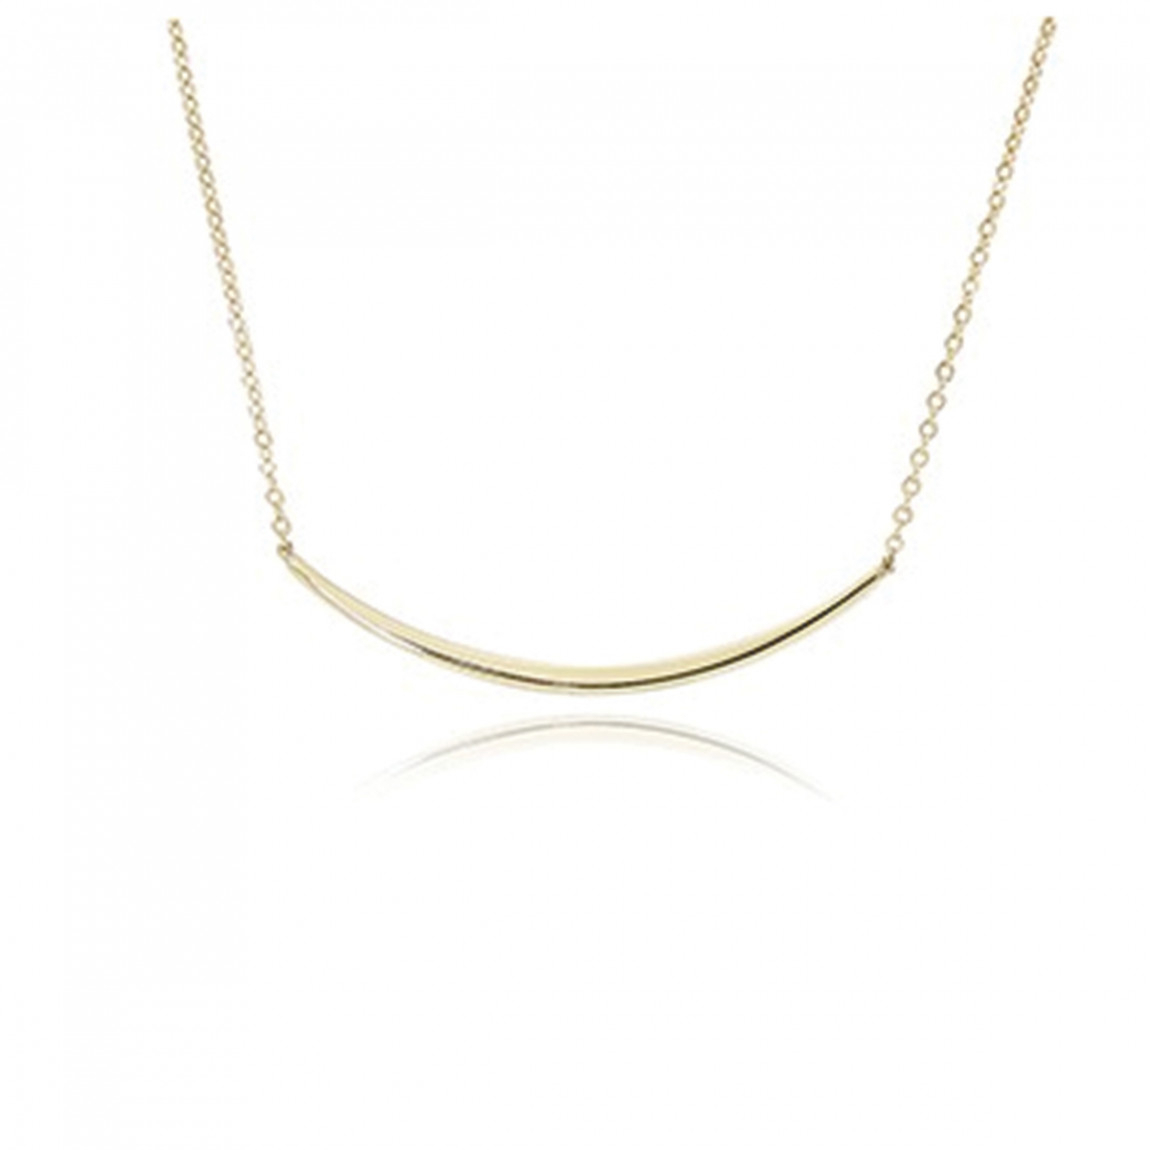 Curved Bar Necklace, 14K Yellow Gold Regarding Best And Newest Sparkling Curved Bar Necklaces (Gallery 6 of 25)